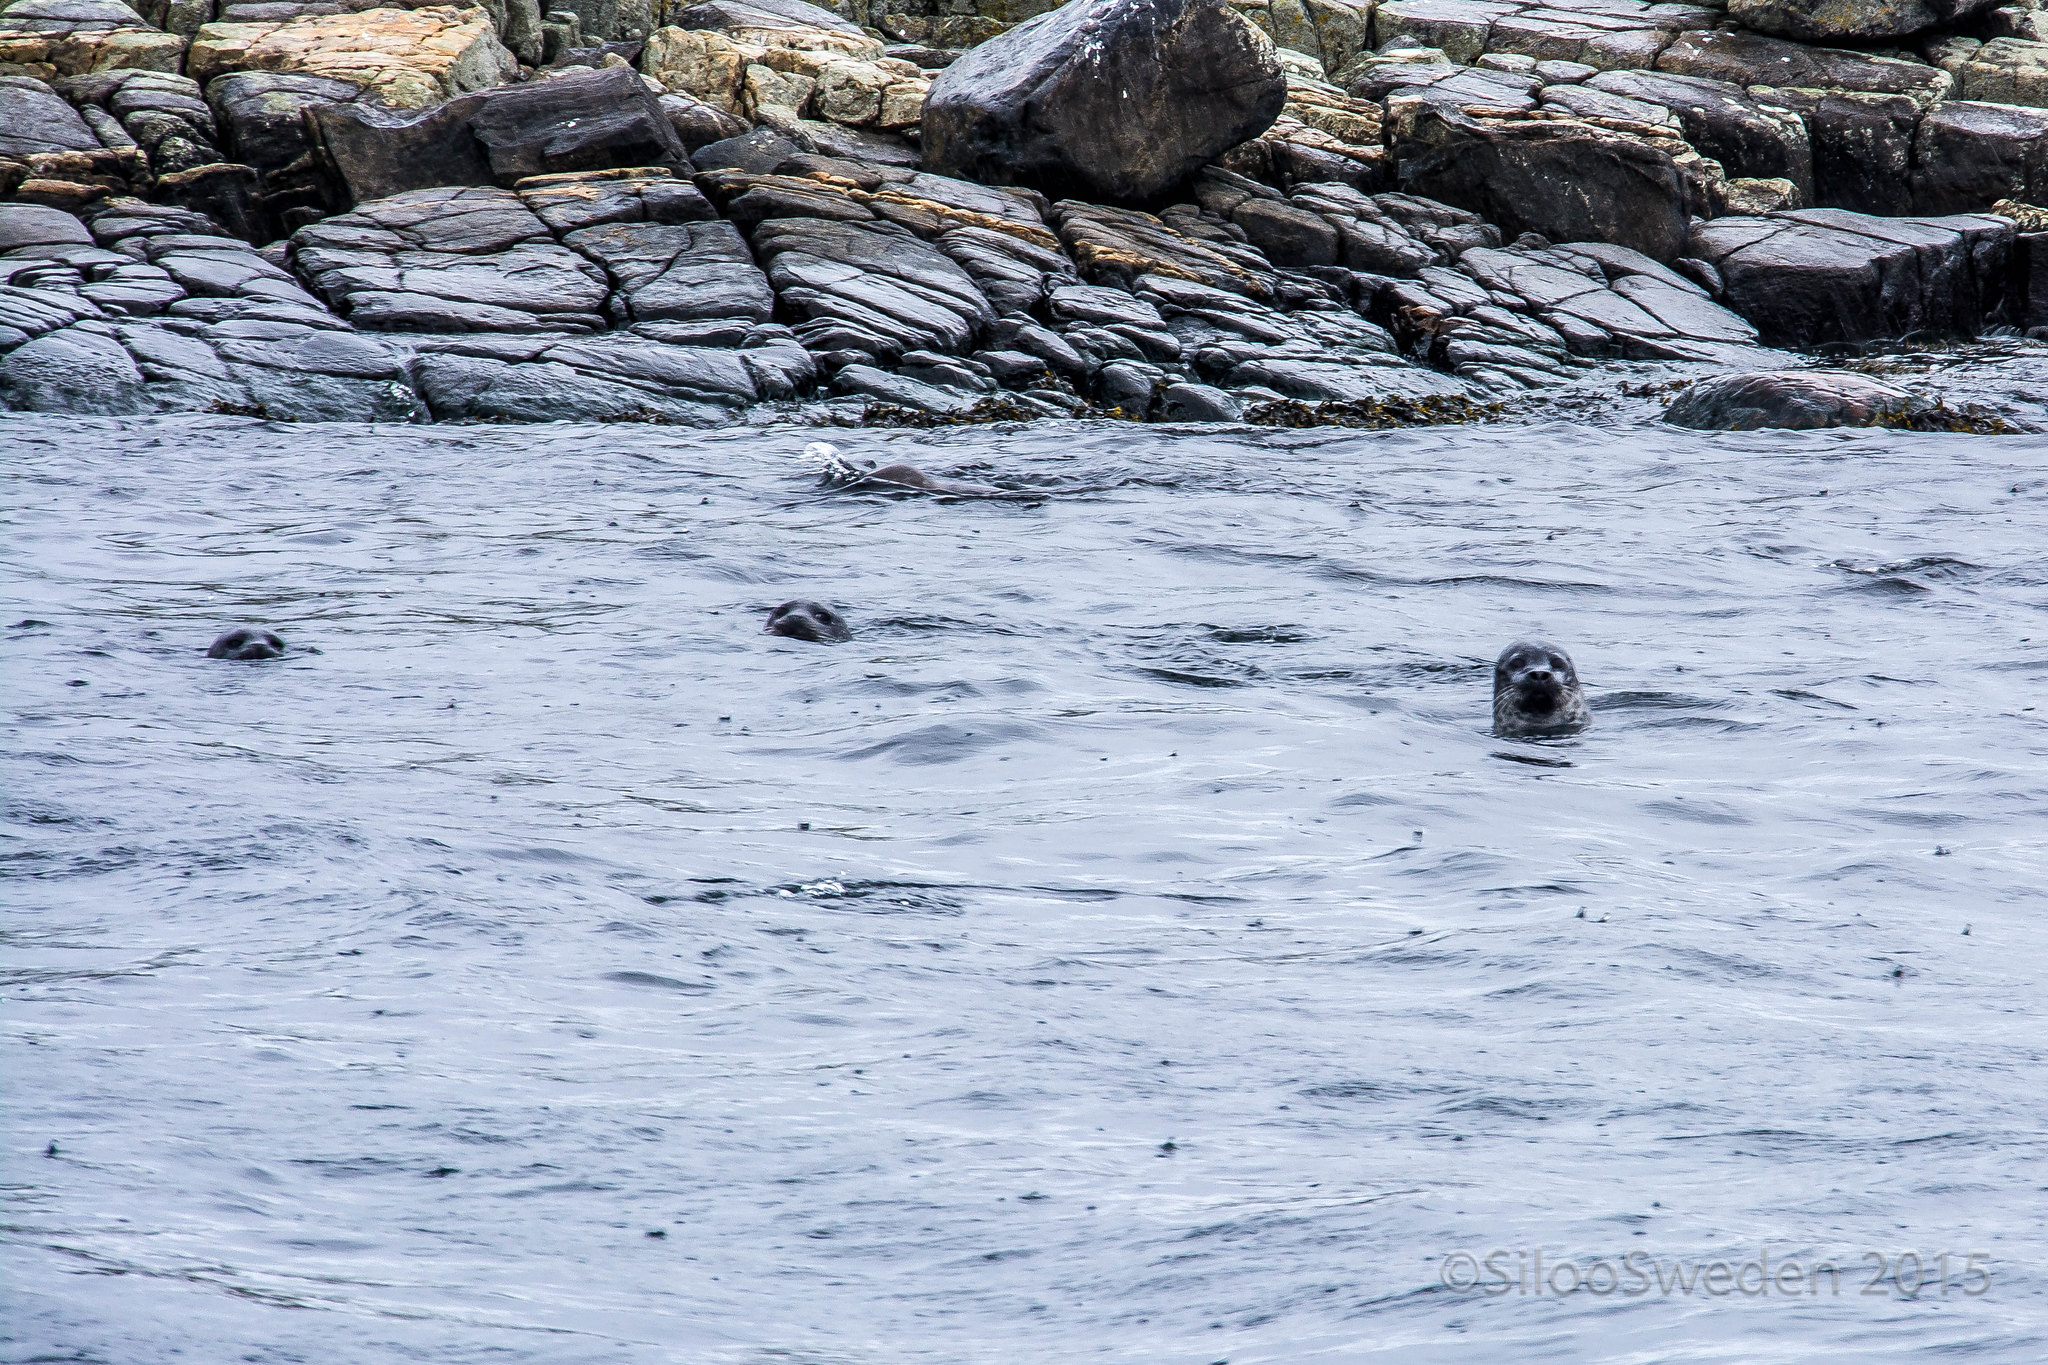 20160813 Seals outside Hallands Väderö